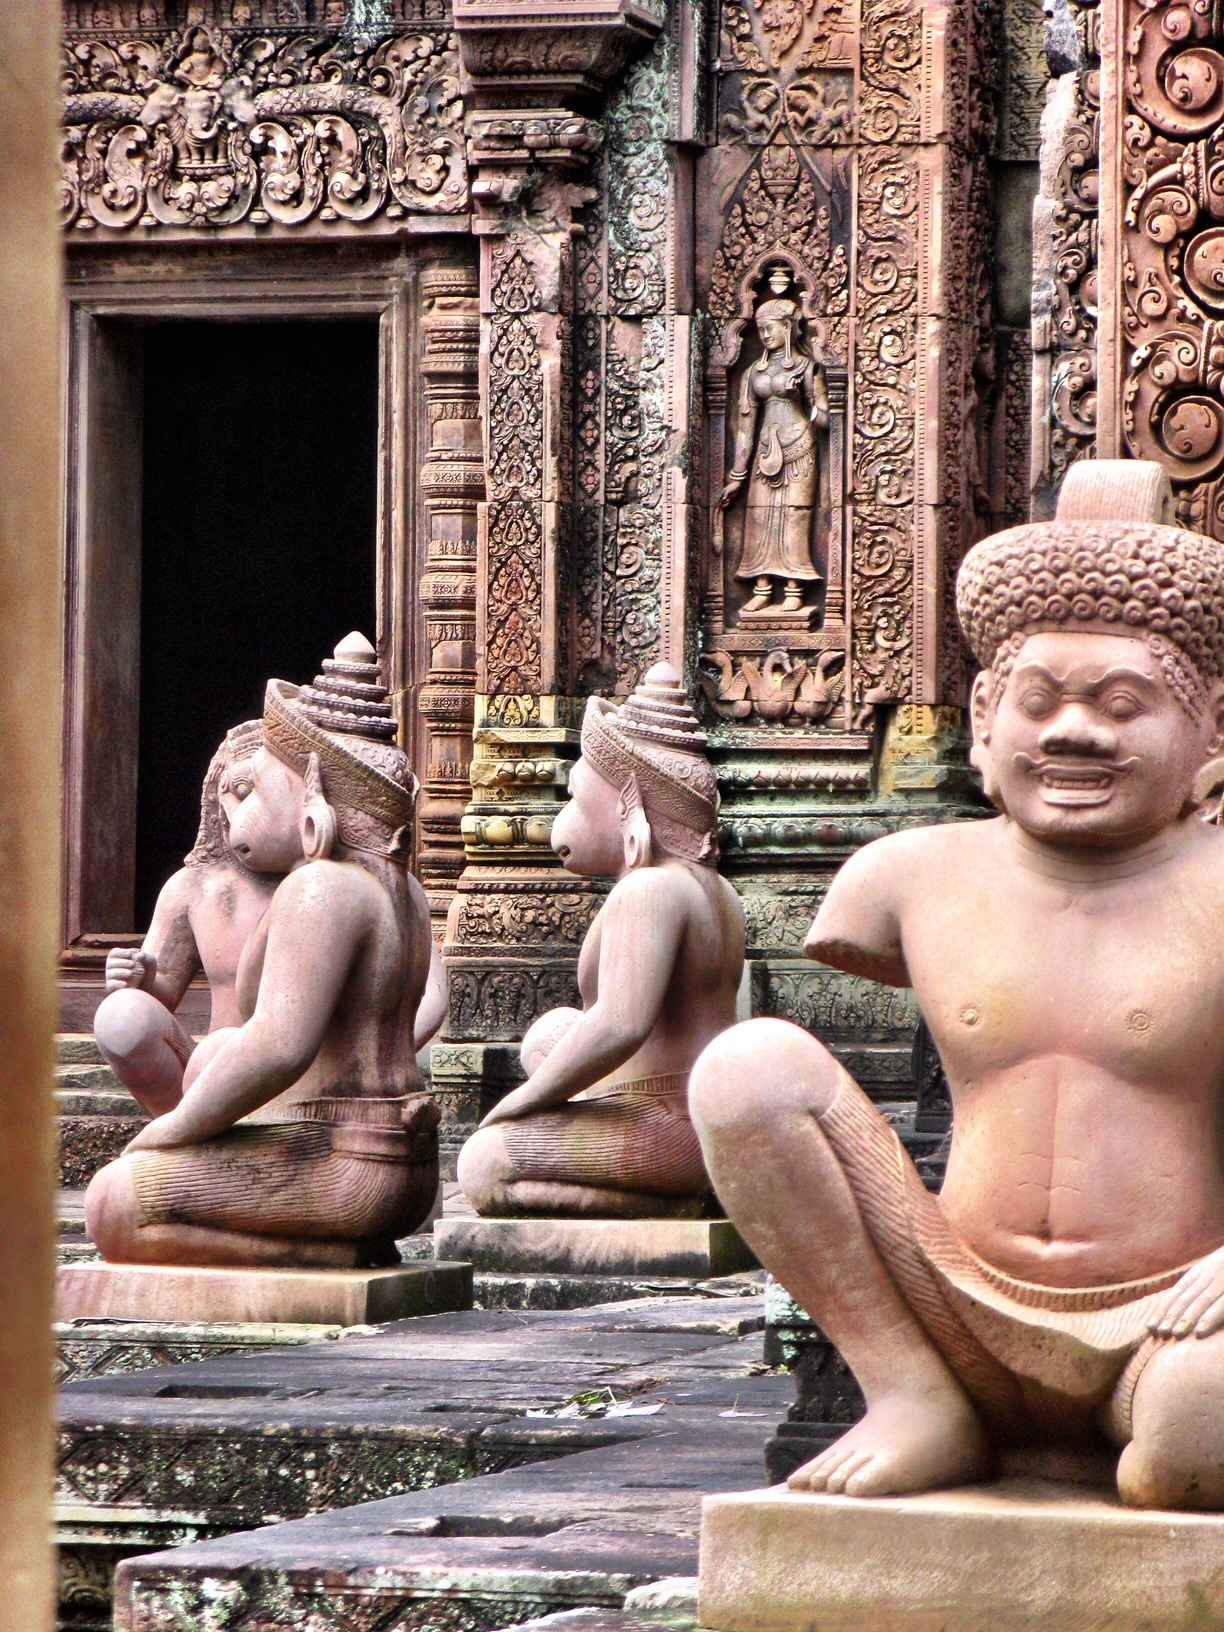 These statues keep watch over the interior of Banteay Srei citadel